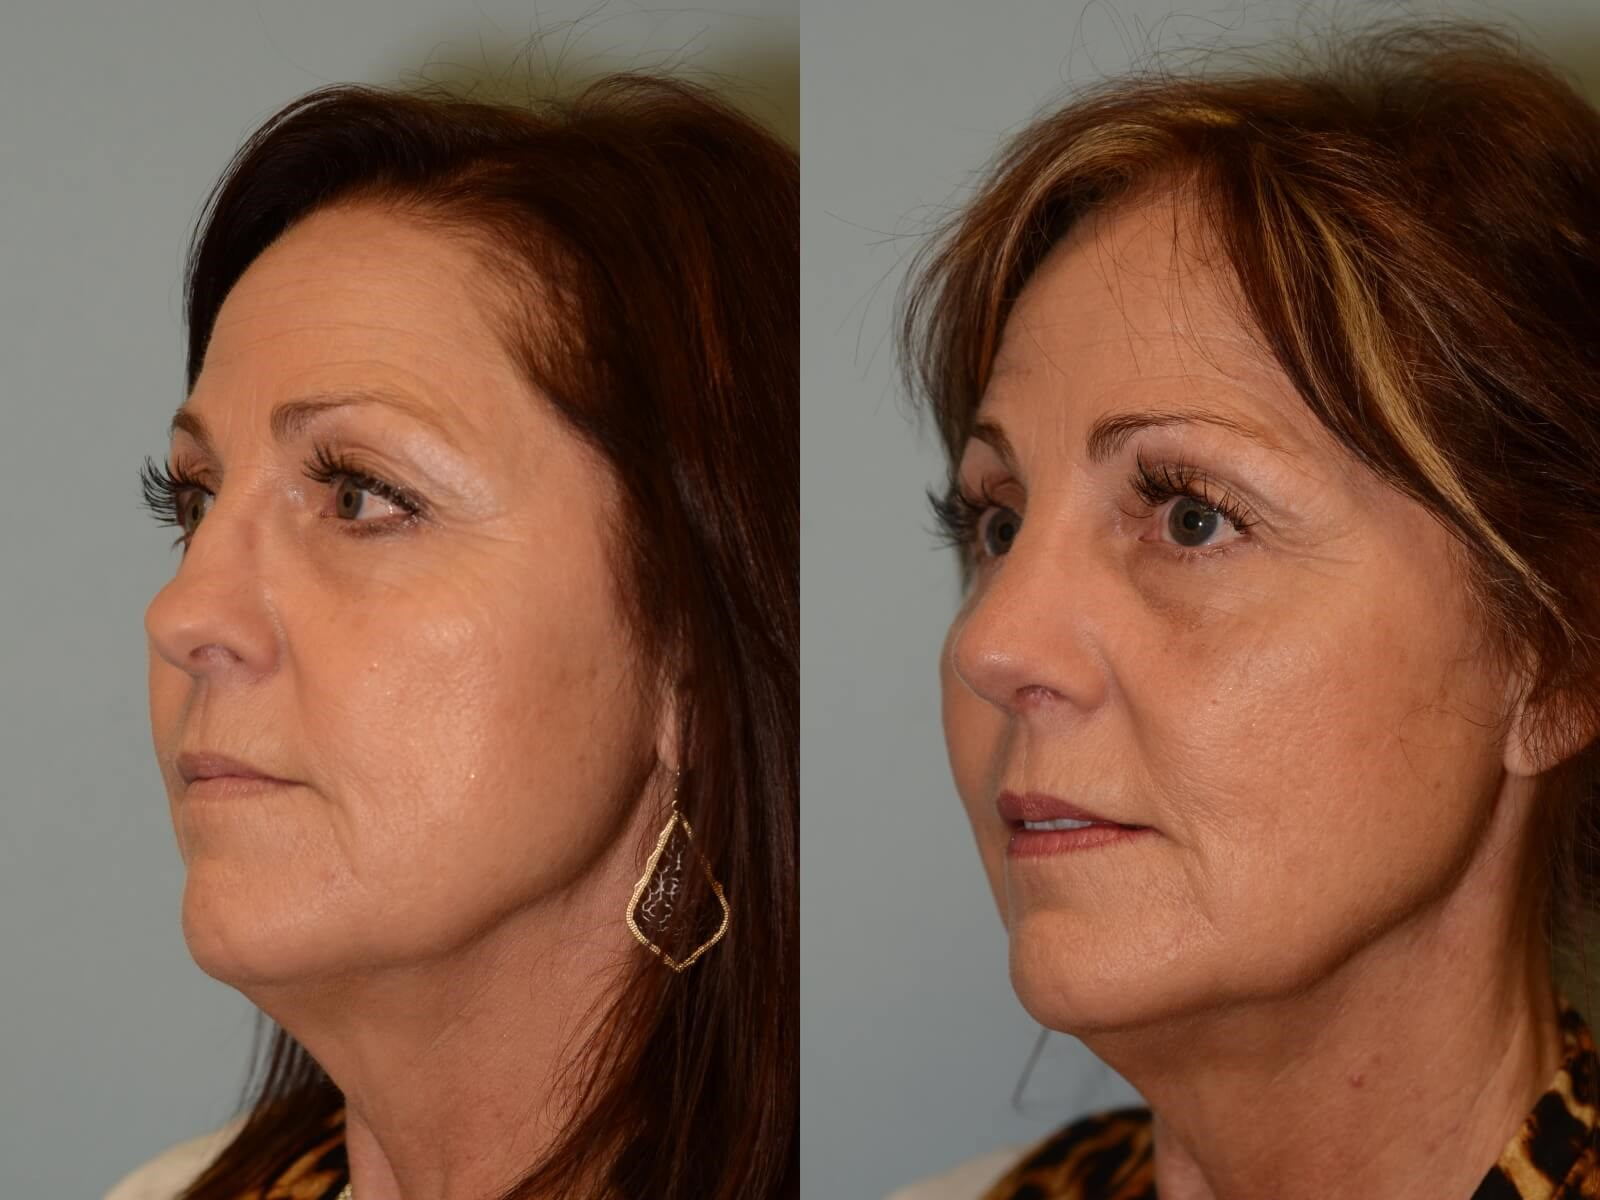 Smooth slope to nose restored Before and After